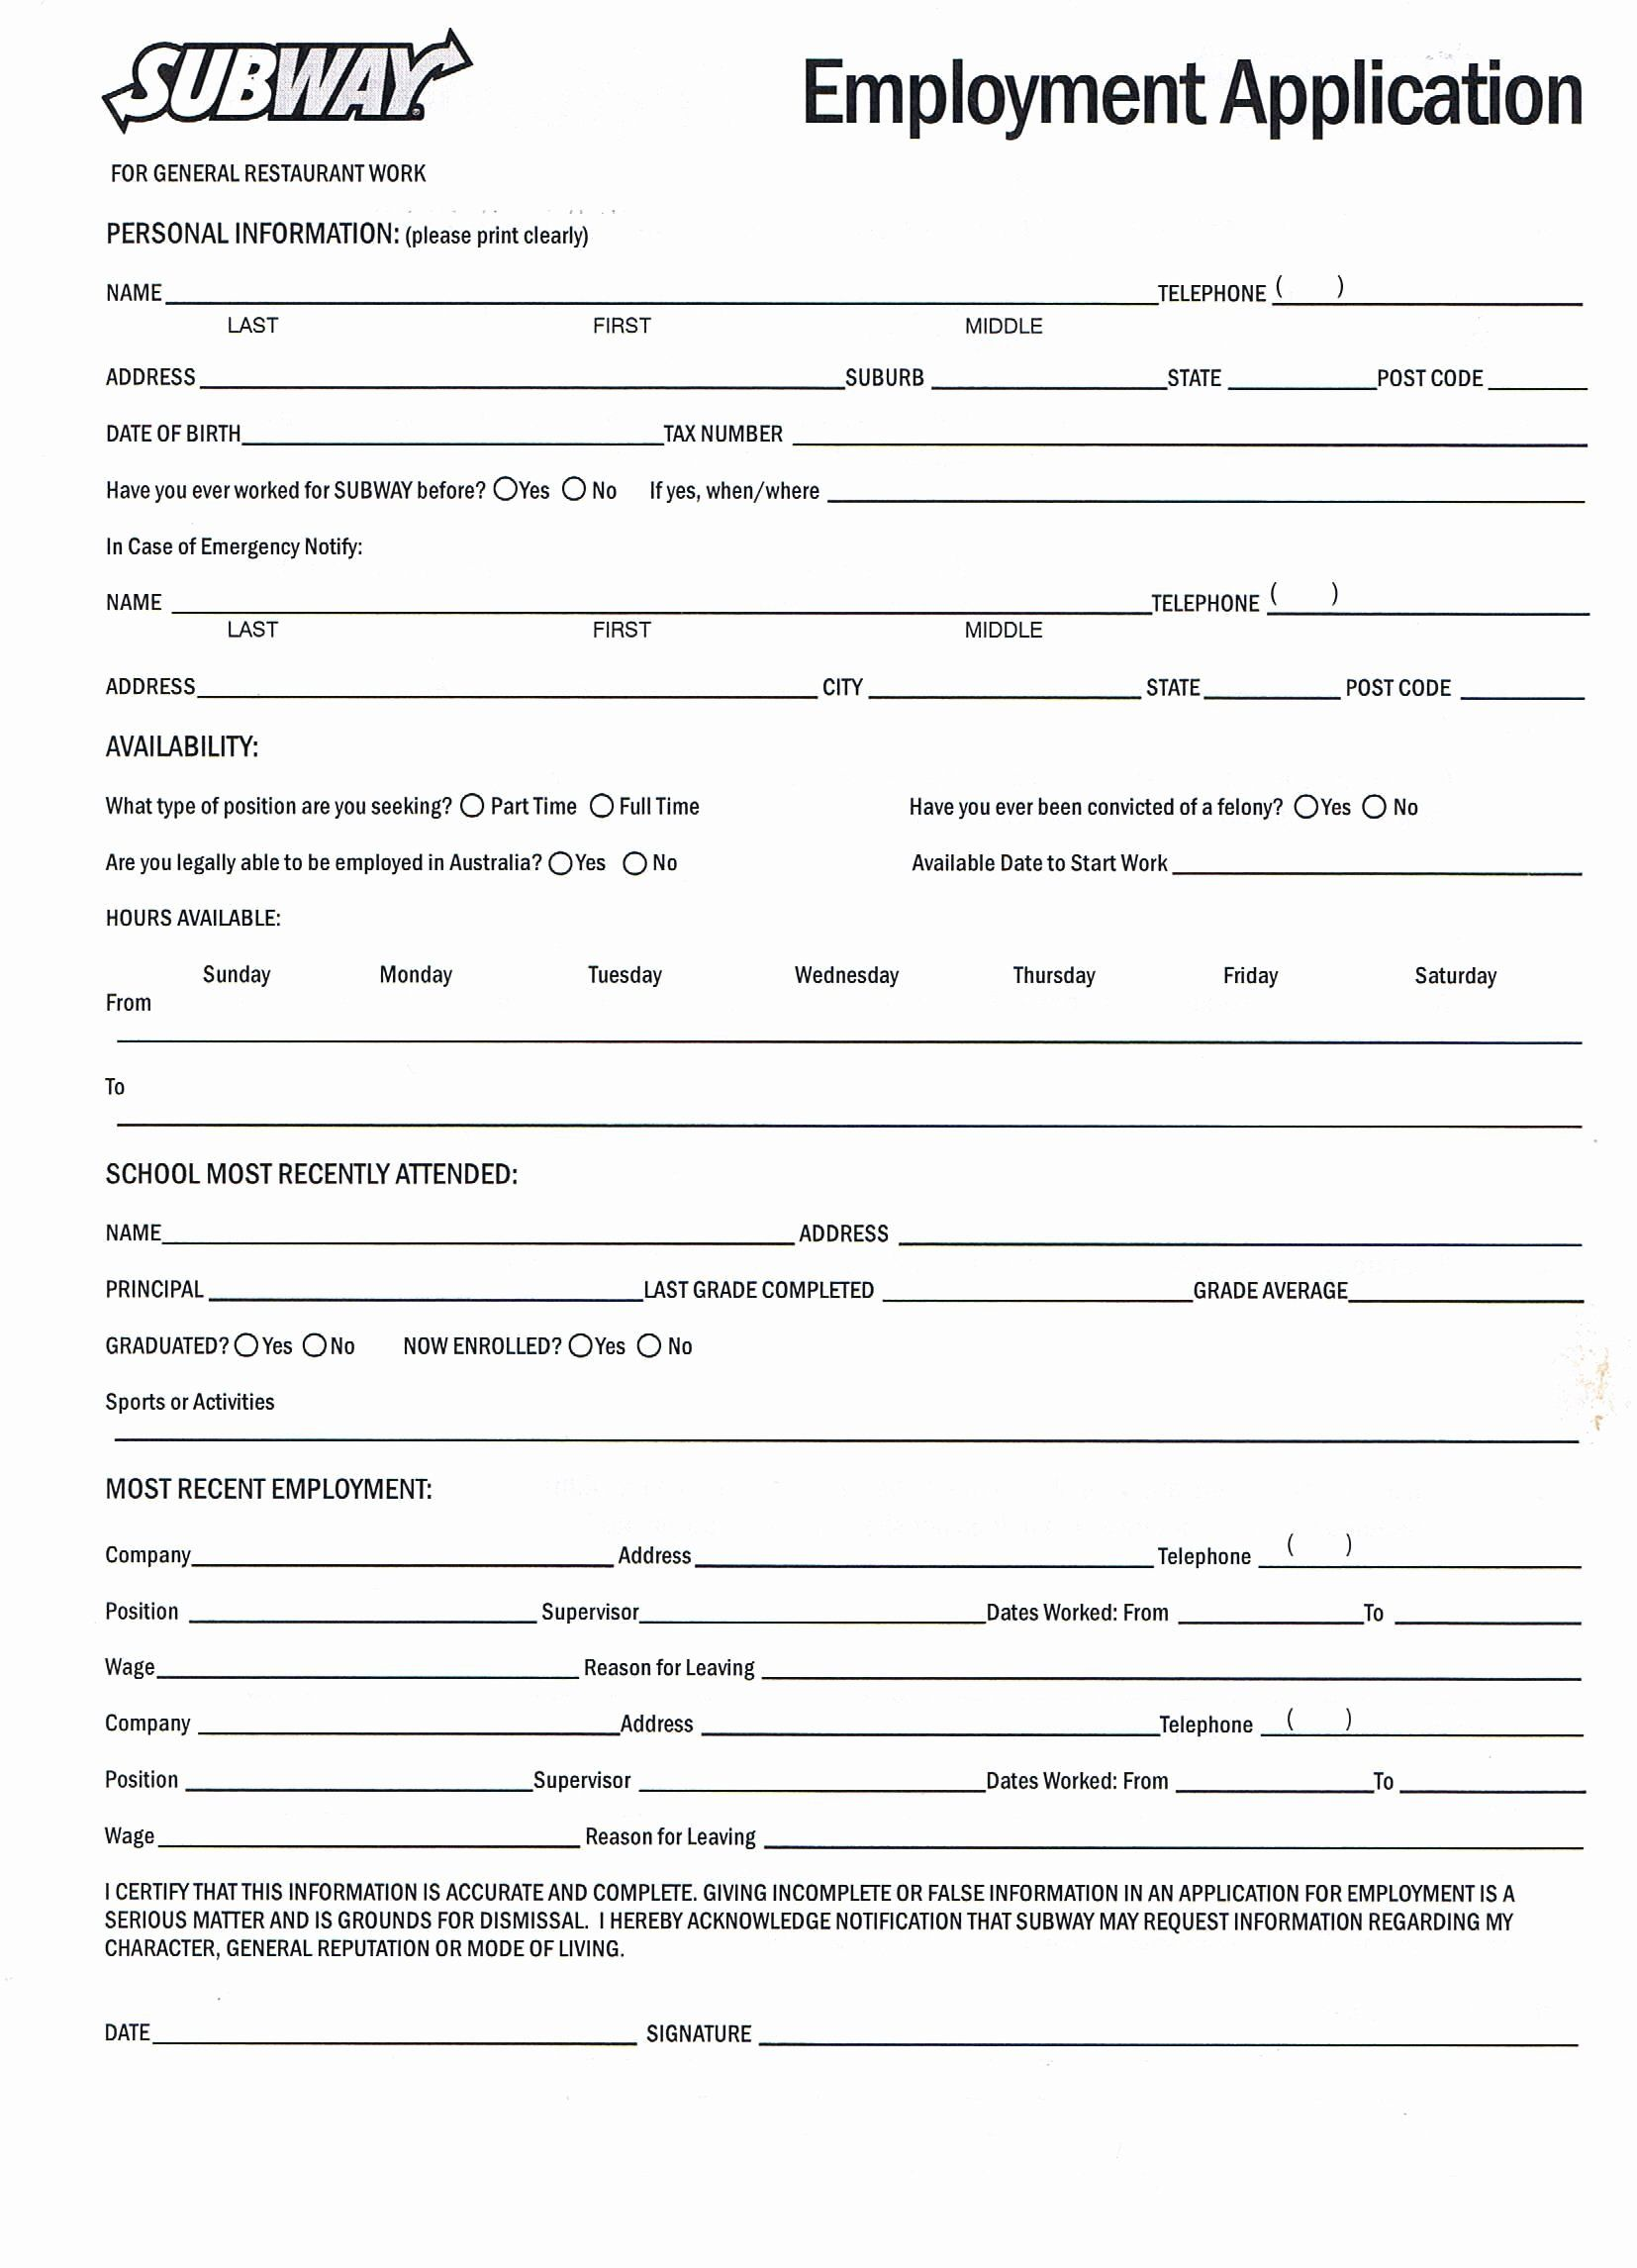 40 Jobs Application form Pdf in 2020 Employment